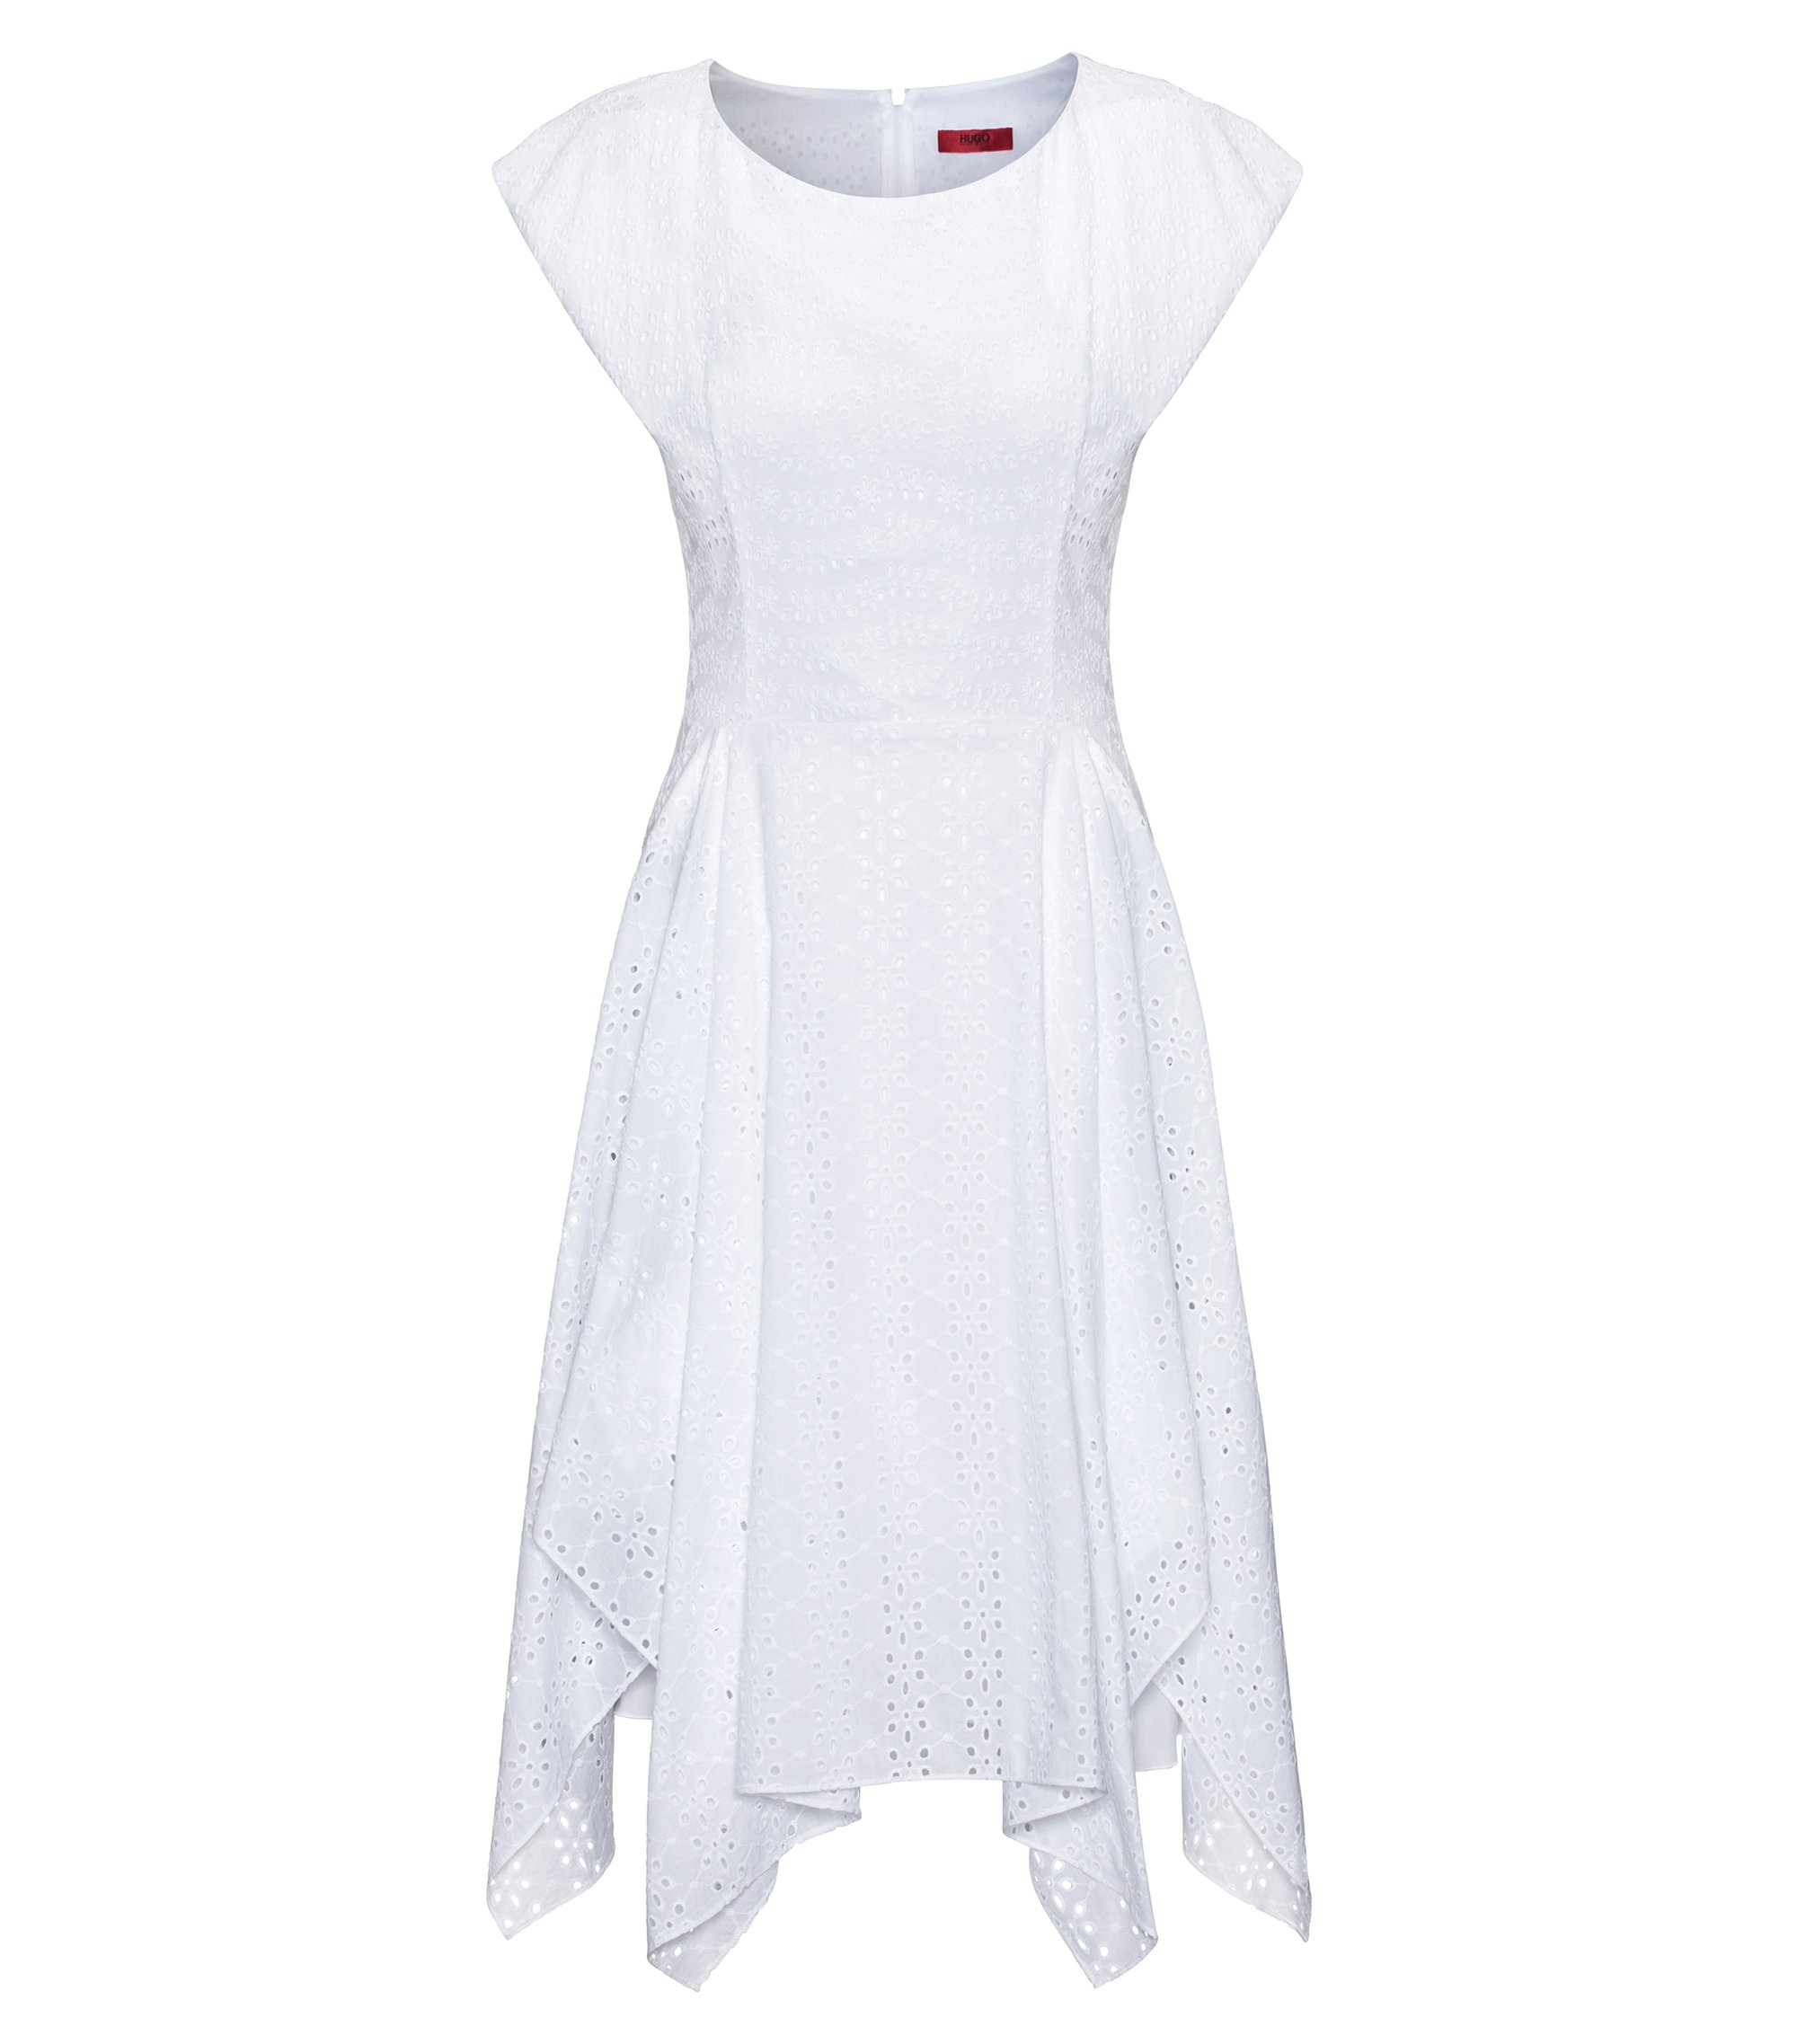 Cotton broderie anglaise dress with handkerchief hem, Blanc